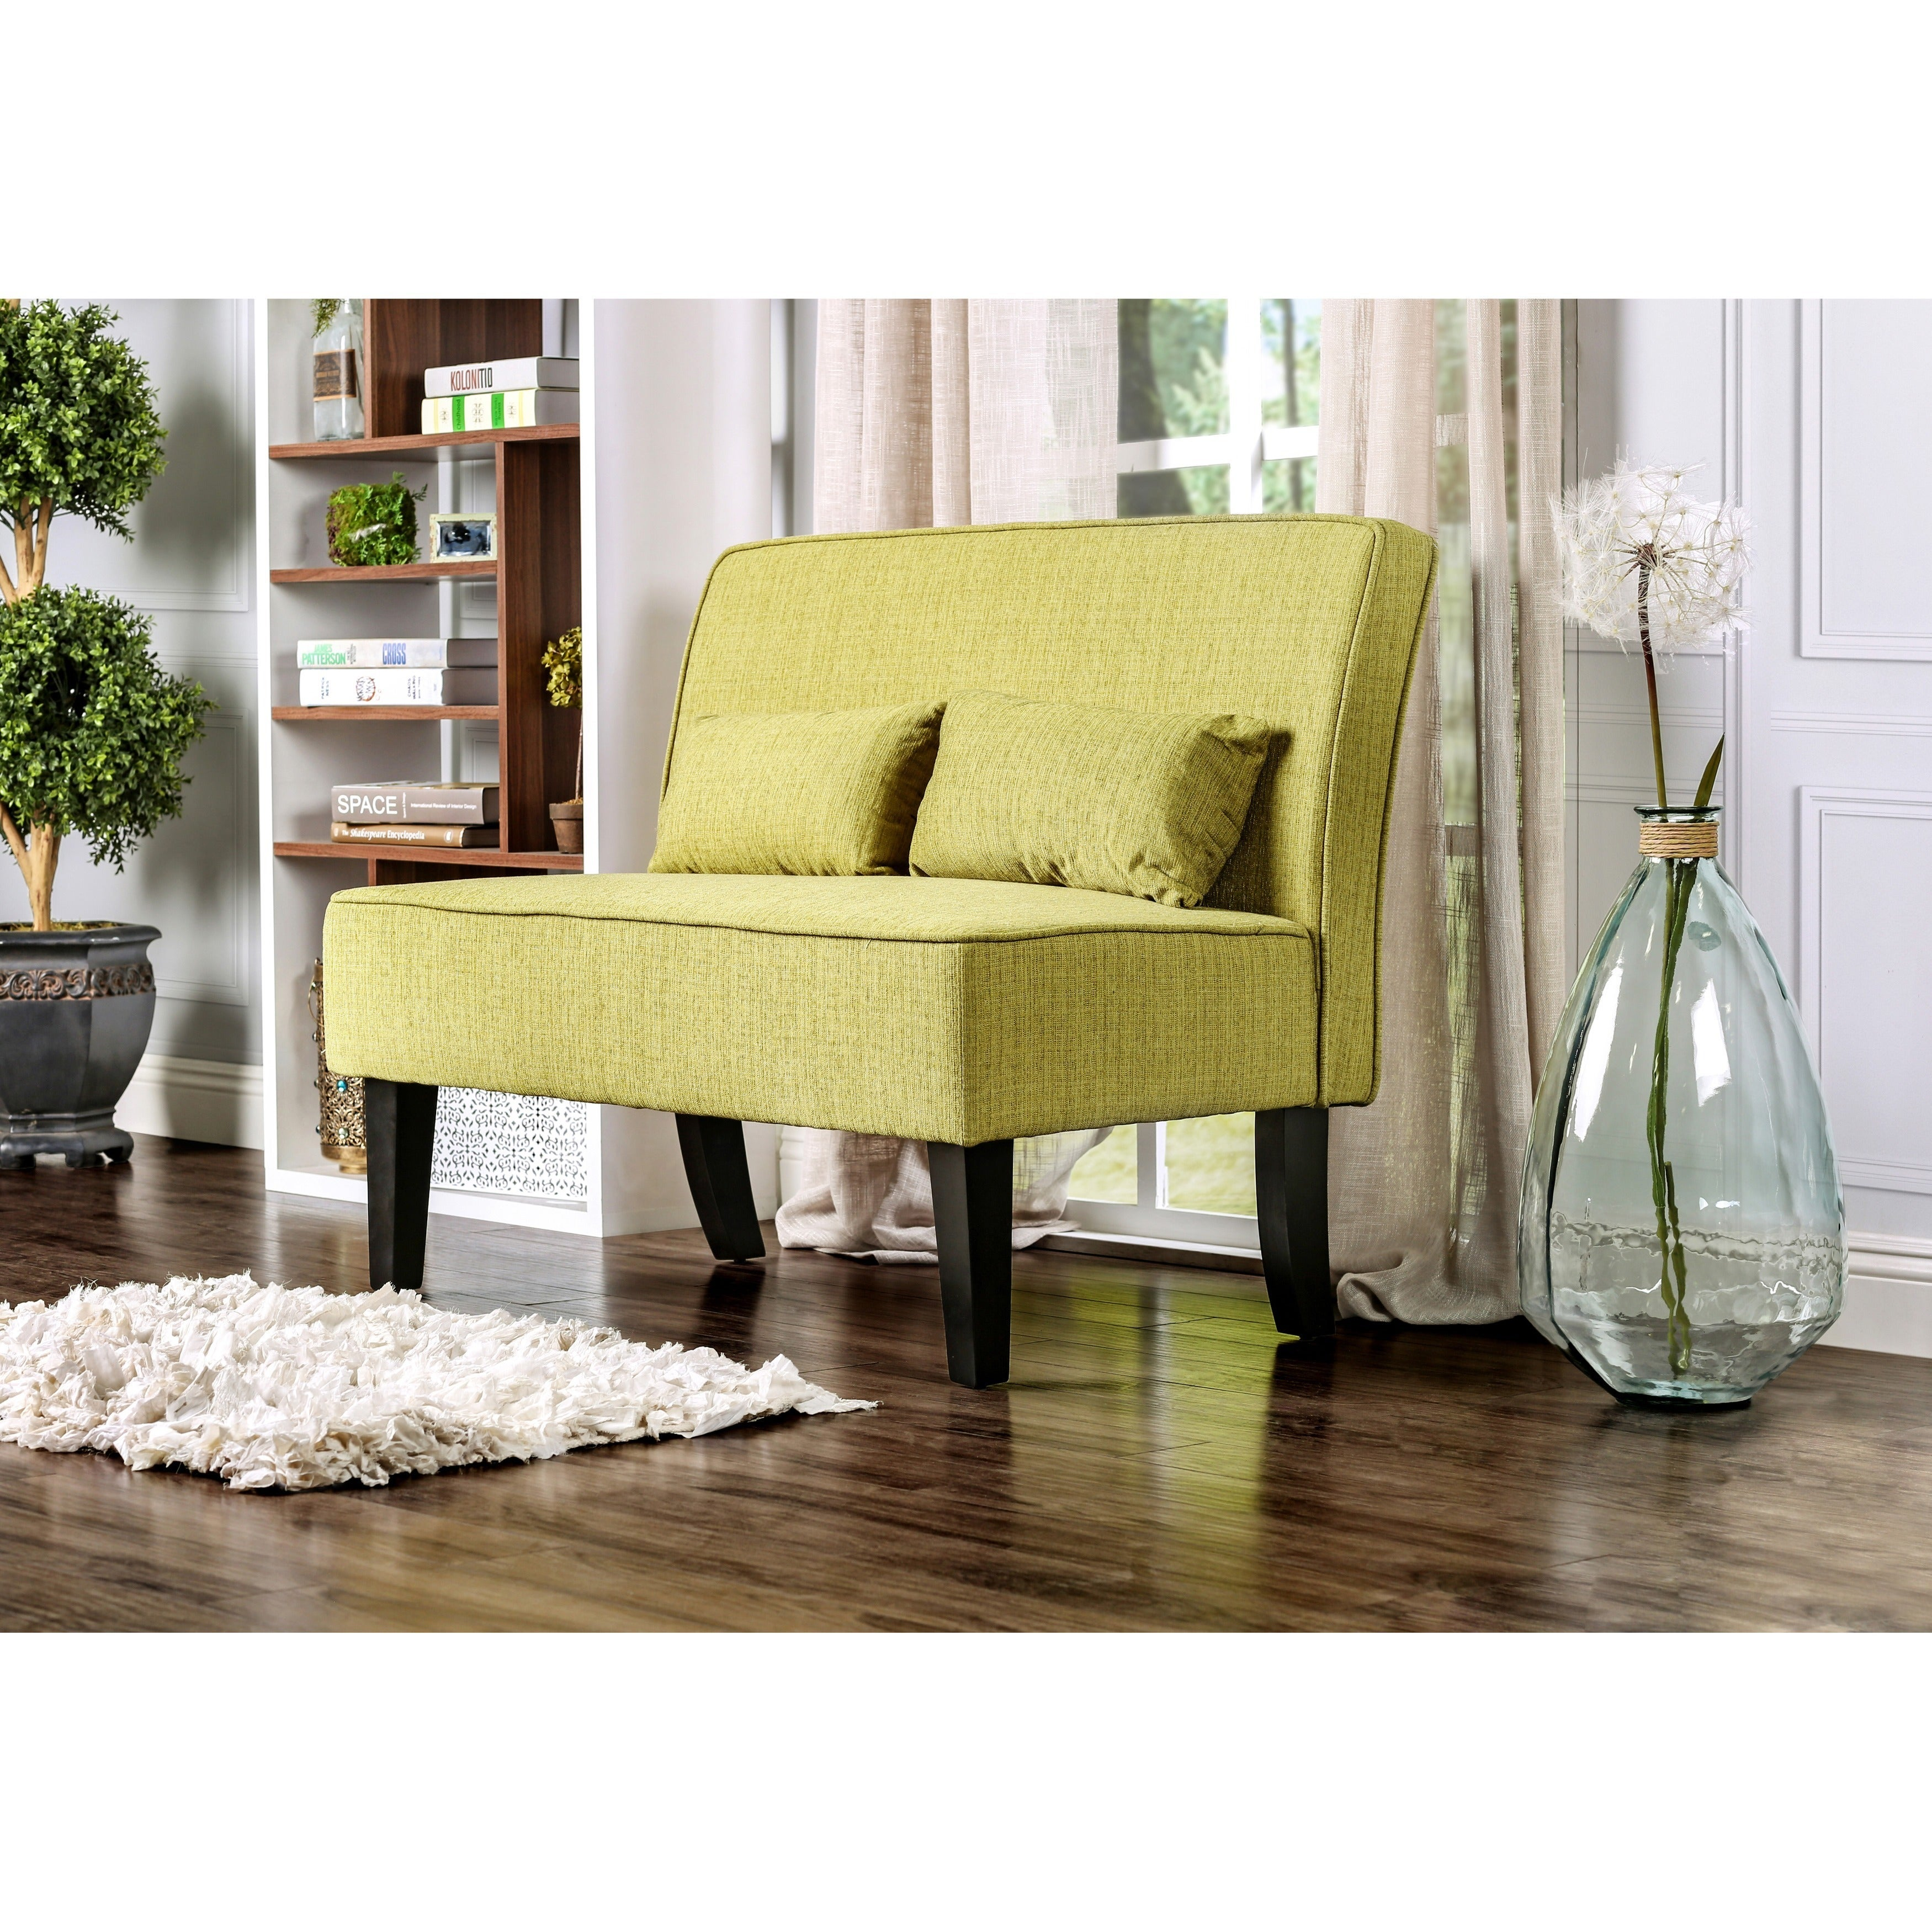 Furniture of America Amirsa Modern Upholstered Armless Loveseat